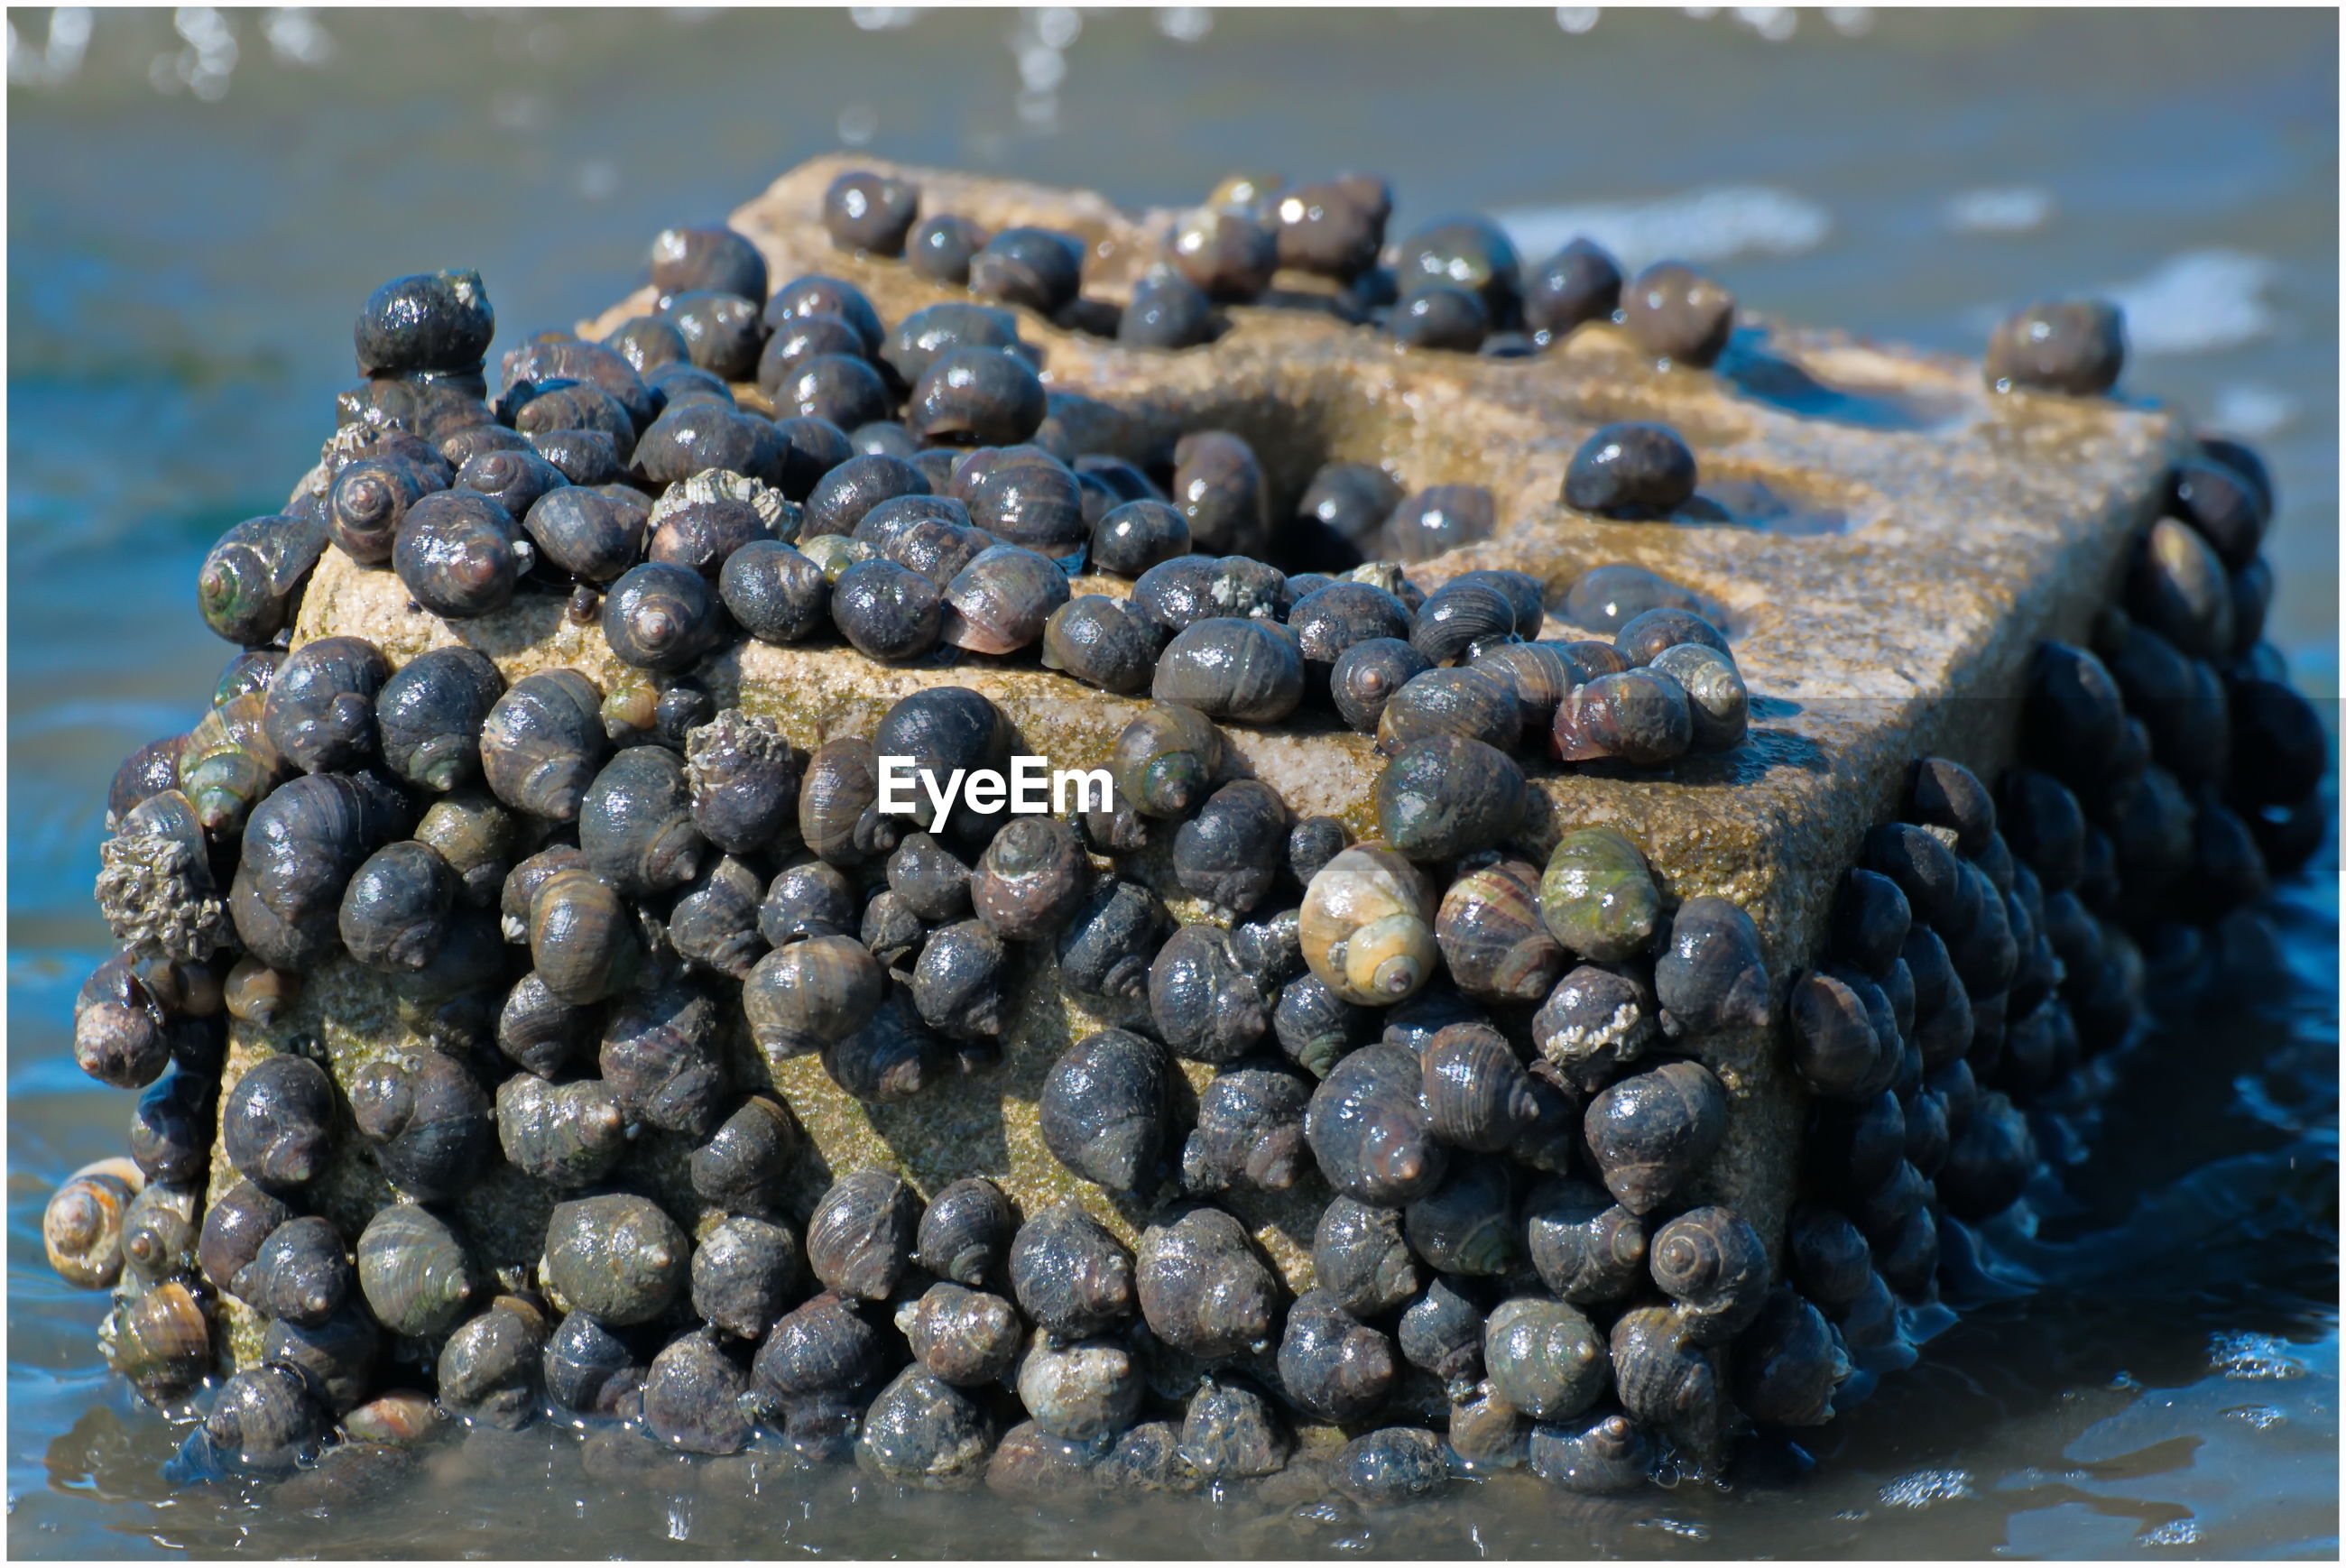 CLOSE-UP OF BLUEBERRIES ON PEBBLES